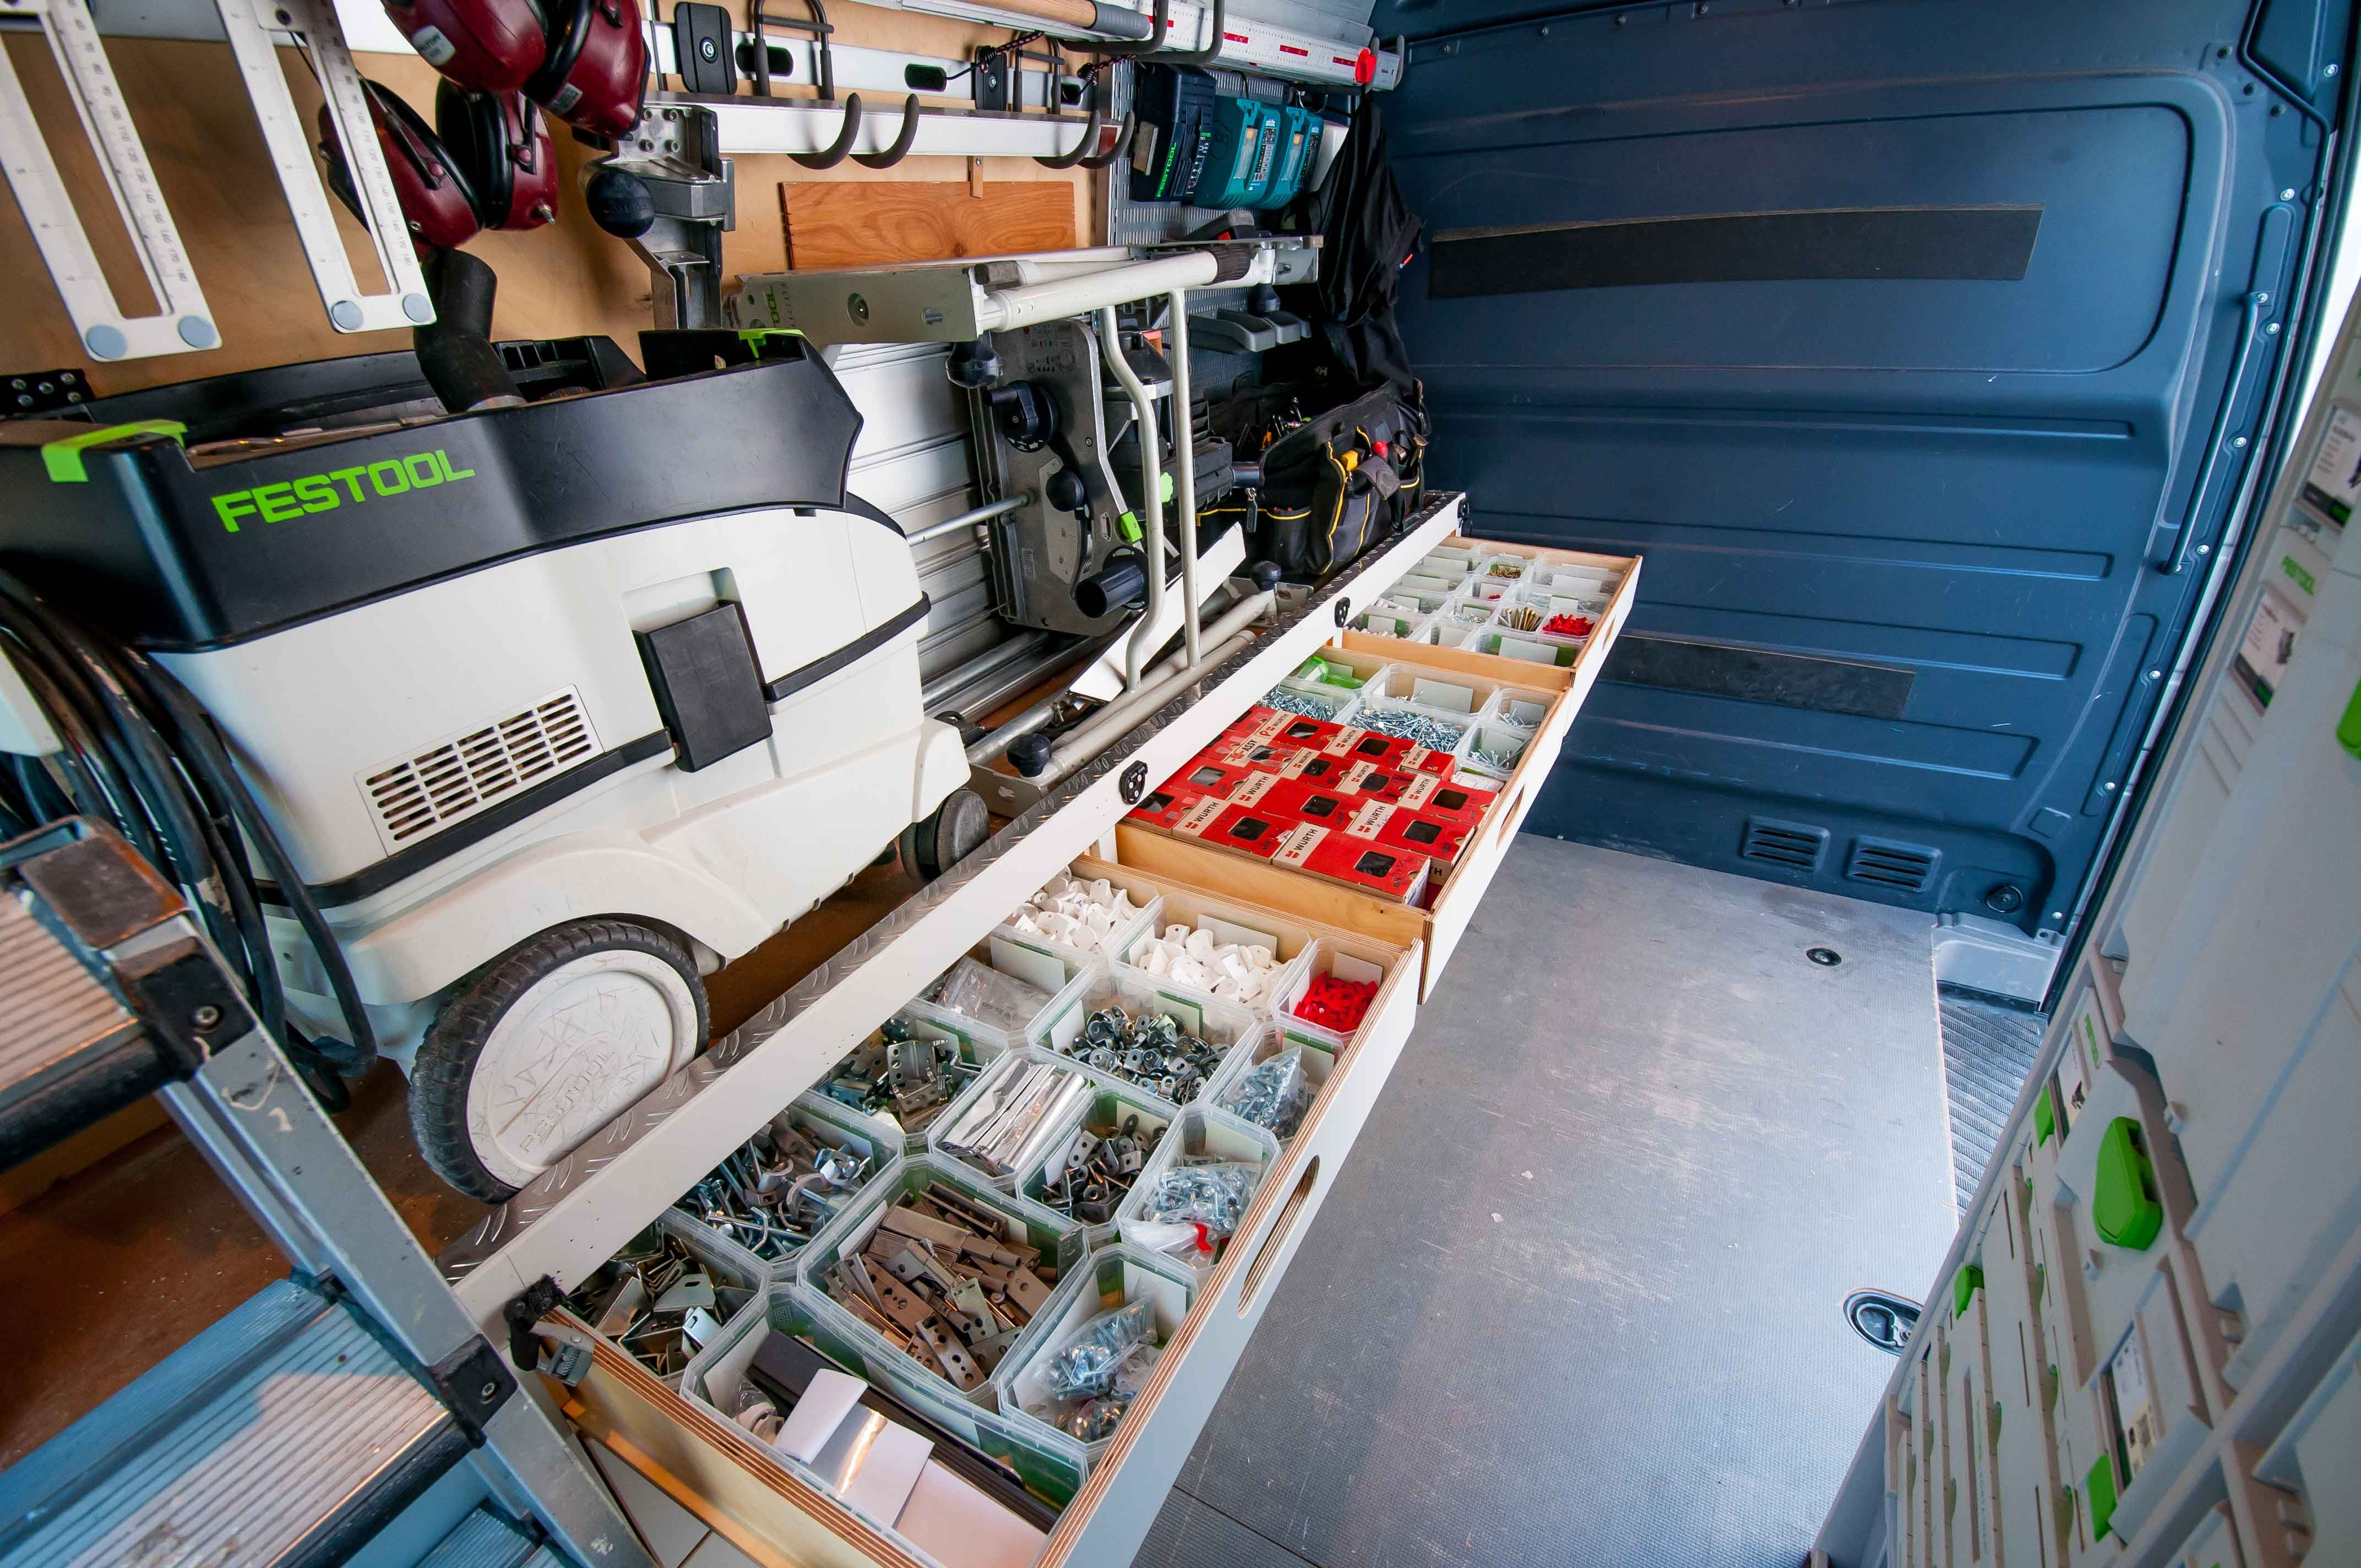 Mercedes Sprinter Kitchen Fitter Setup With Festool And More